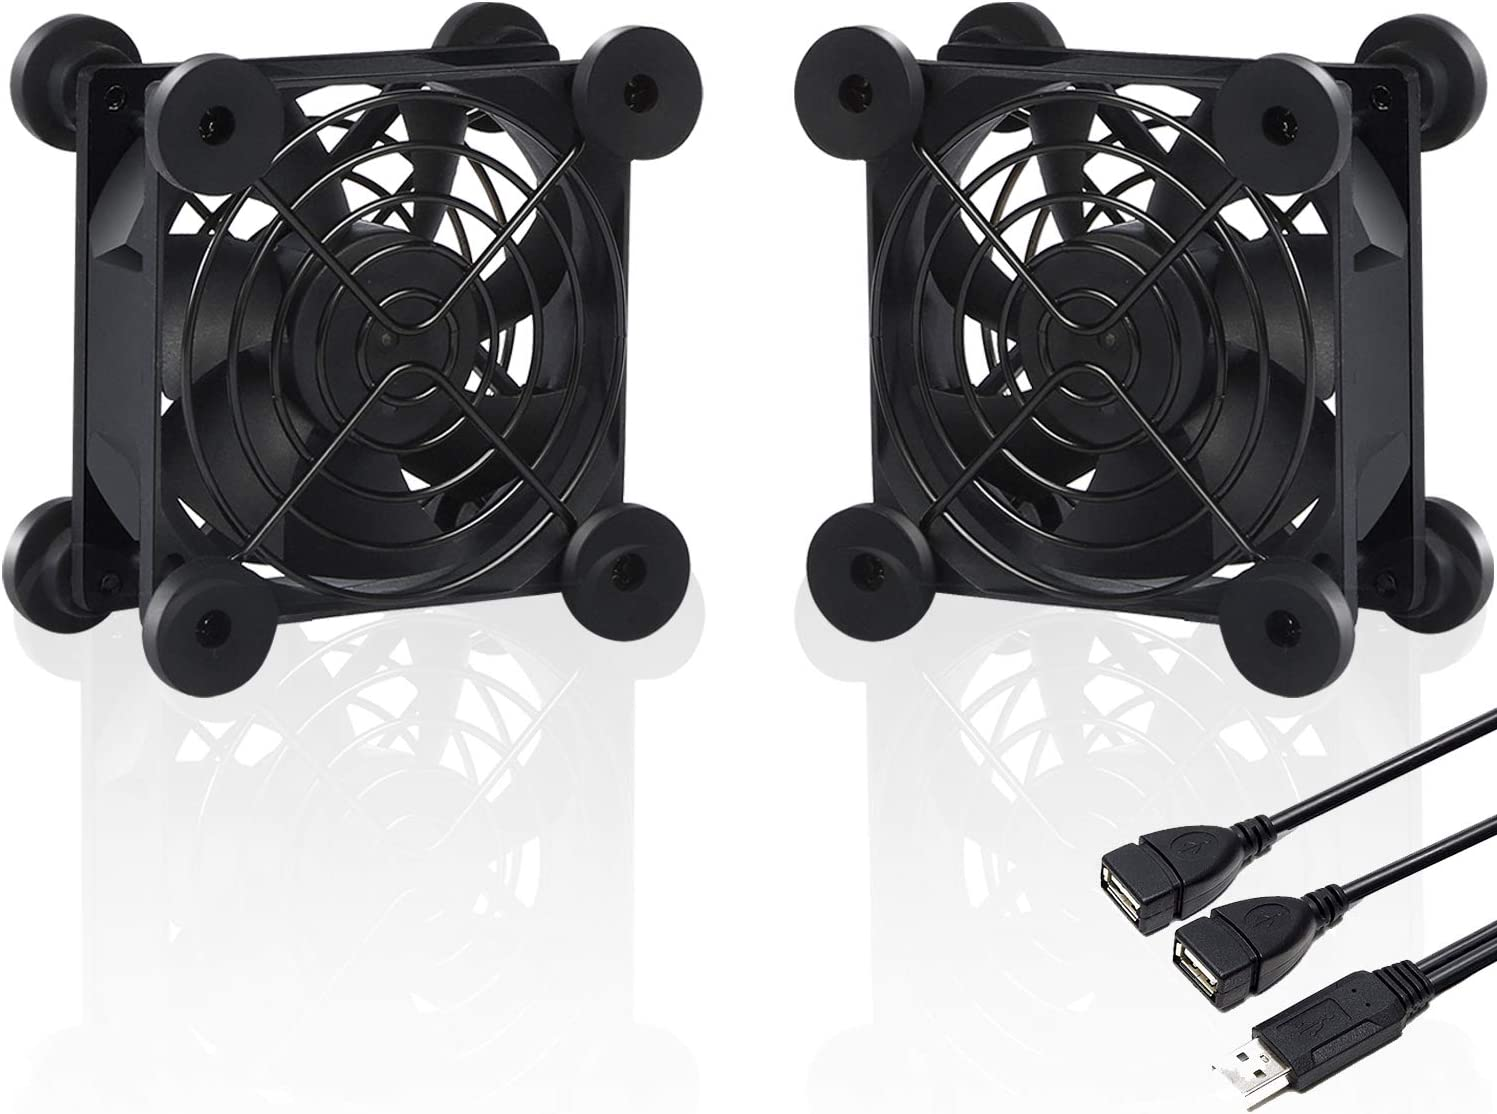 upHere U803 USB Fan Dual-Ball Bearings Silent 80mm Fan for Computer Cases Computer Cabinet Playstation Xbox Cooling